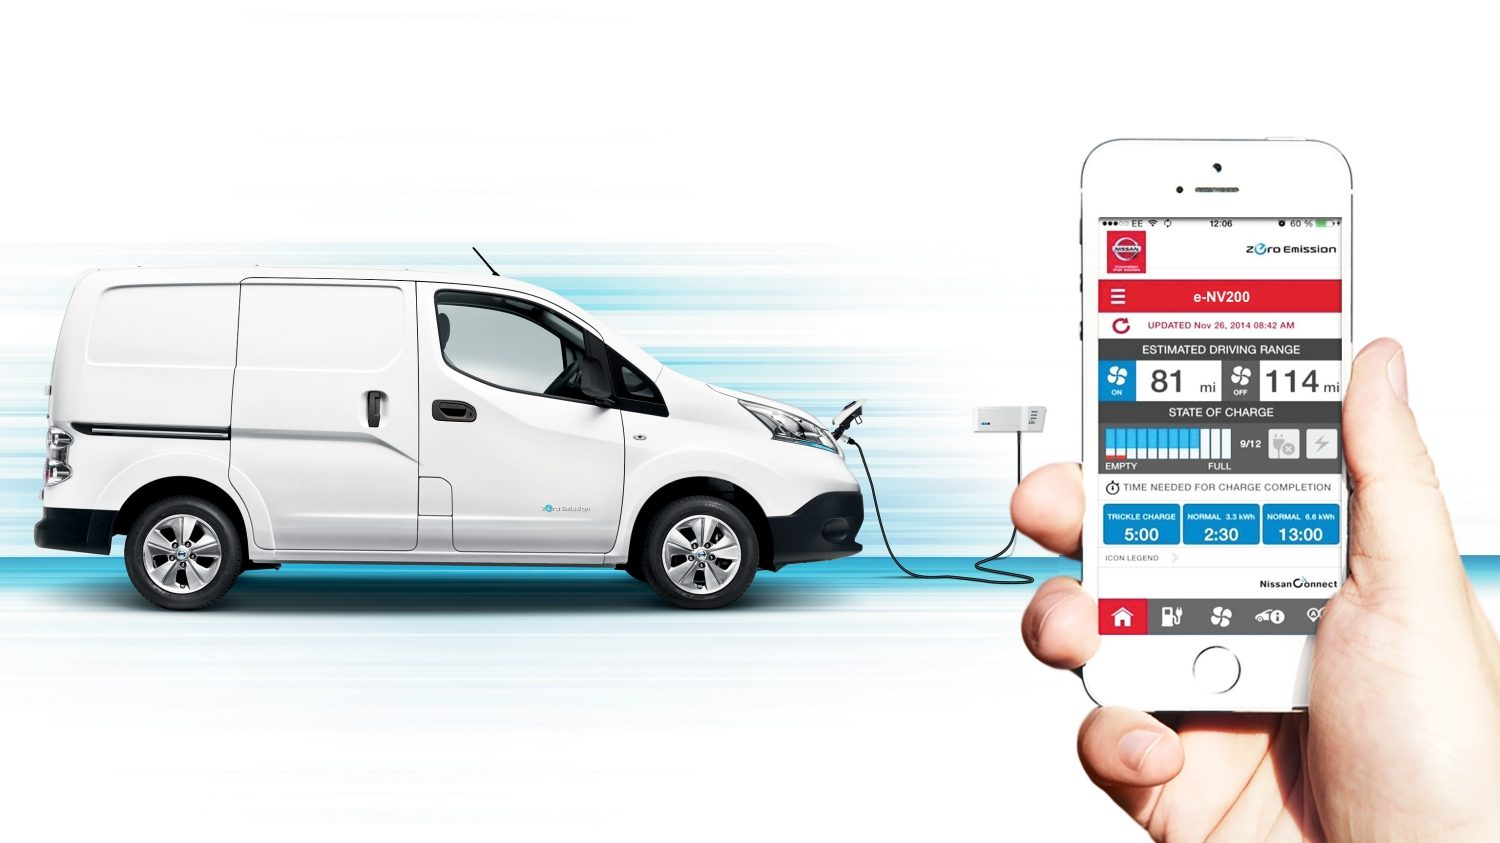 Van | Nissan e-NV200 | Charging the vehicle